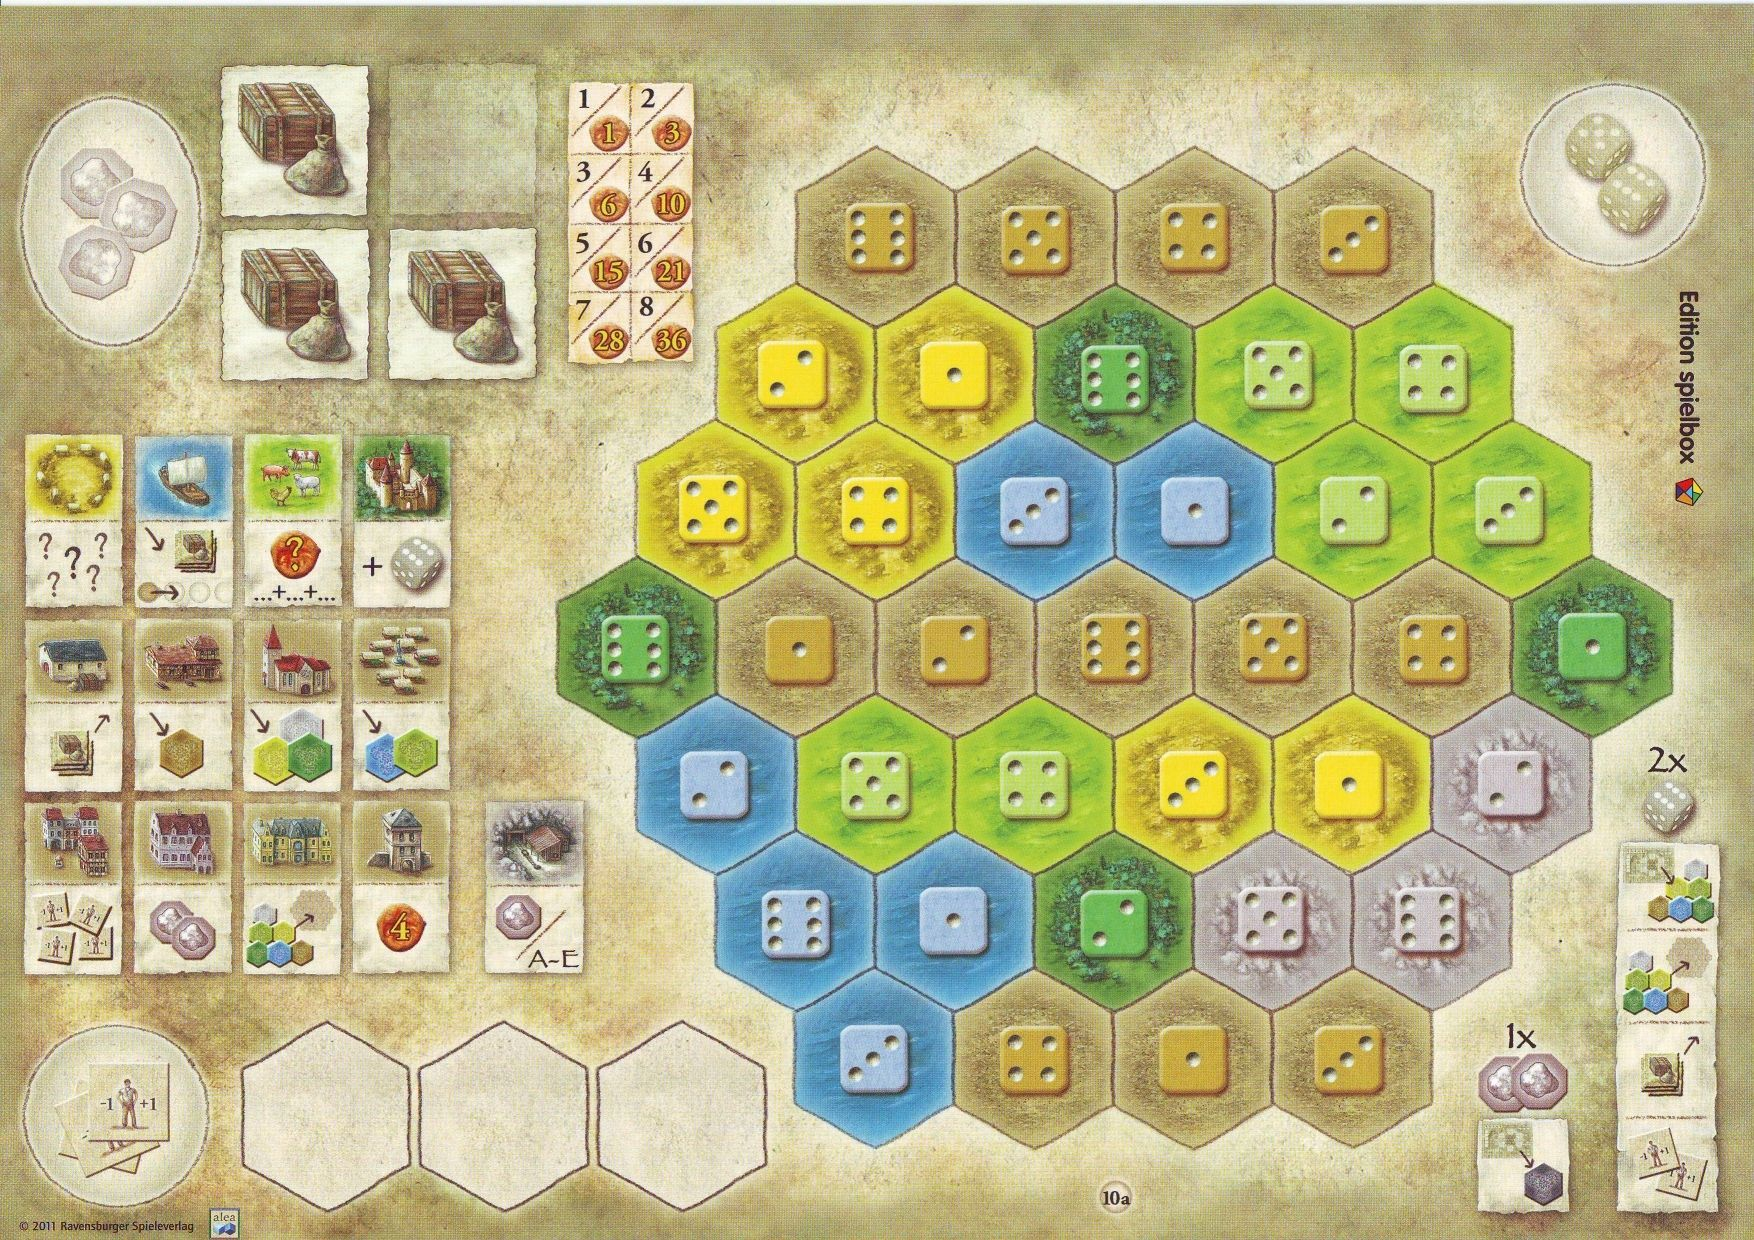 The Castles of Burgundy: 1st Expansion – New Player Boards